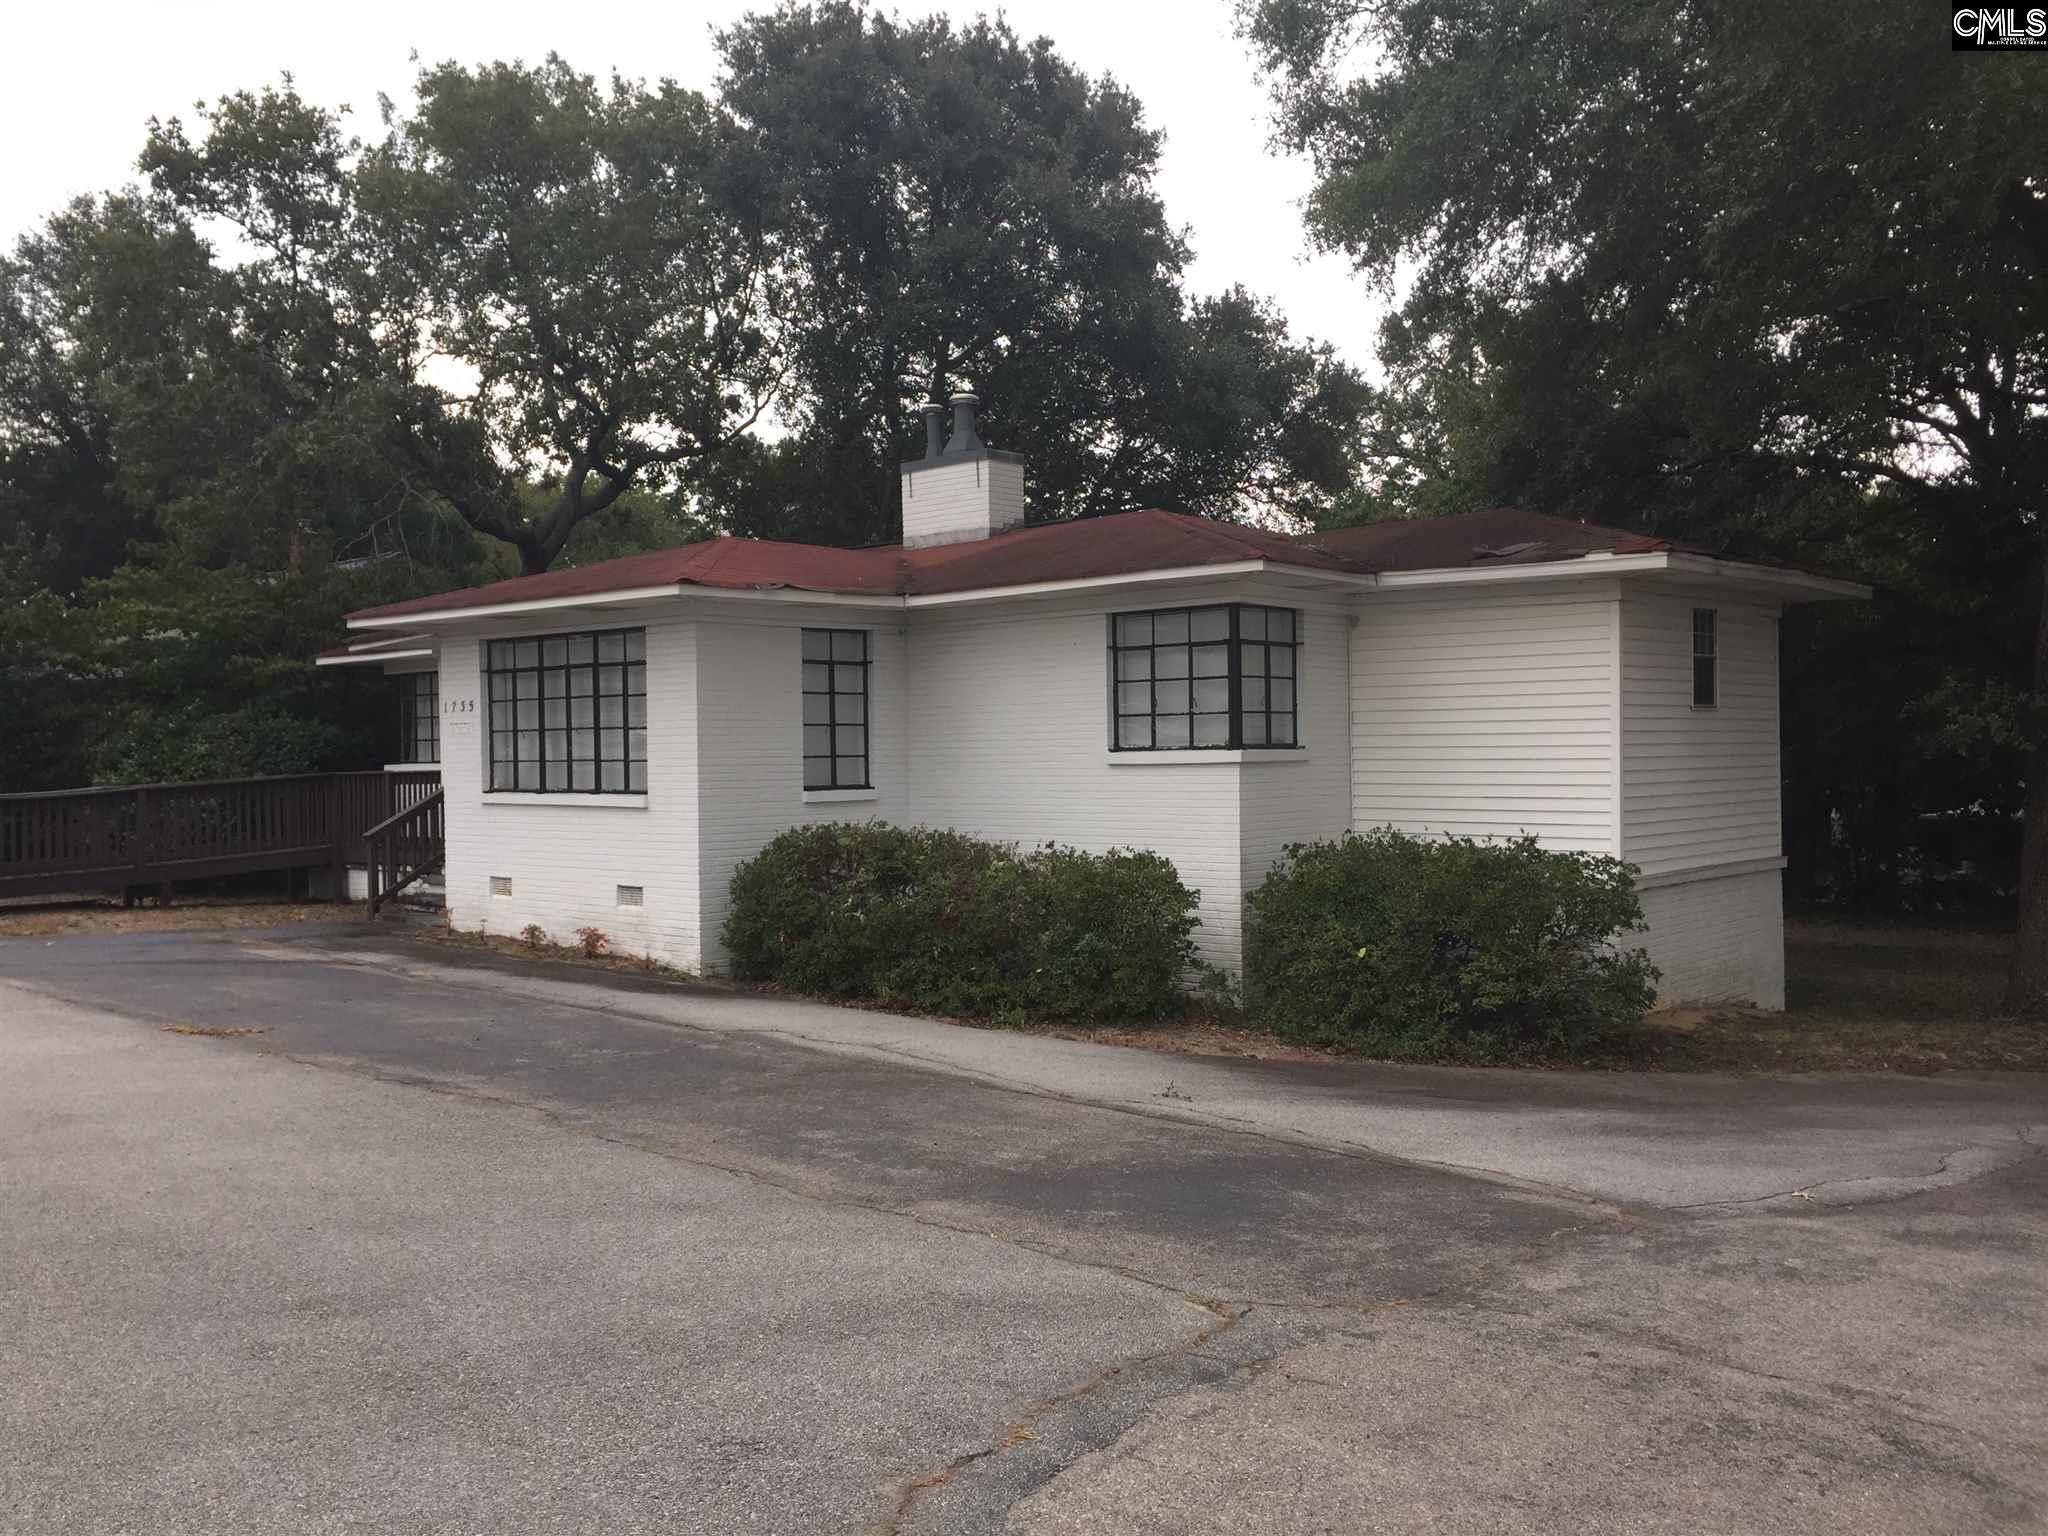 Awesome commercial property minutes to downtown Columbia and Vista.  Property was formerly a law office, and is set up for 2-3 offices and break room/storage room.  Owner motivated.